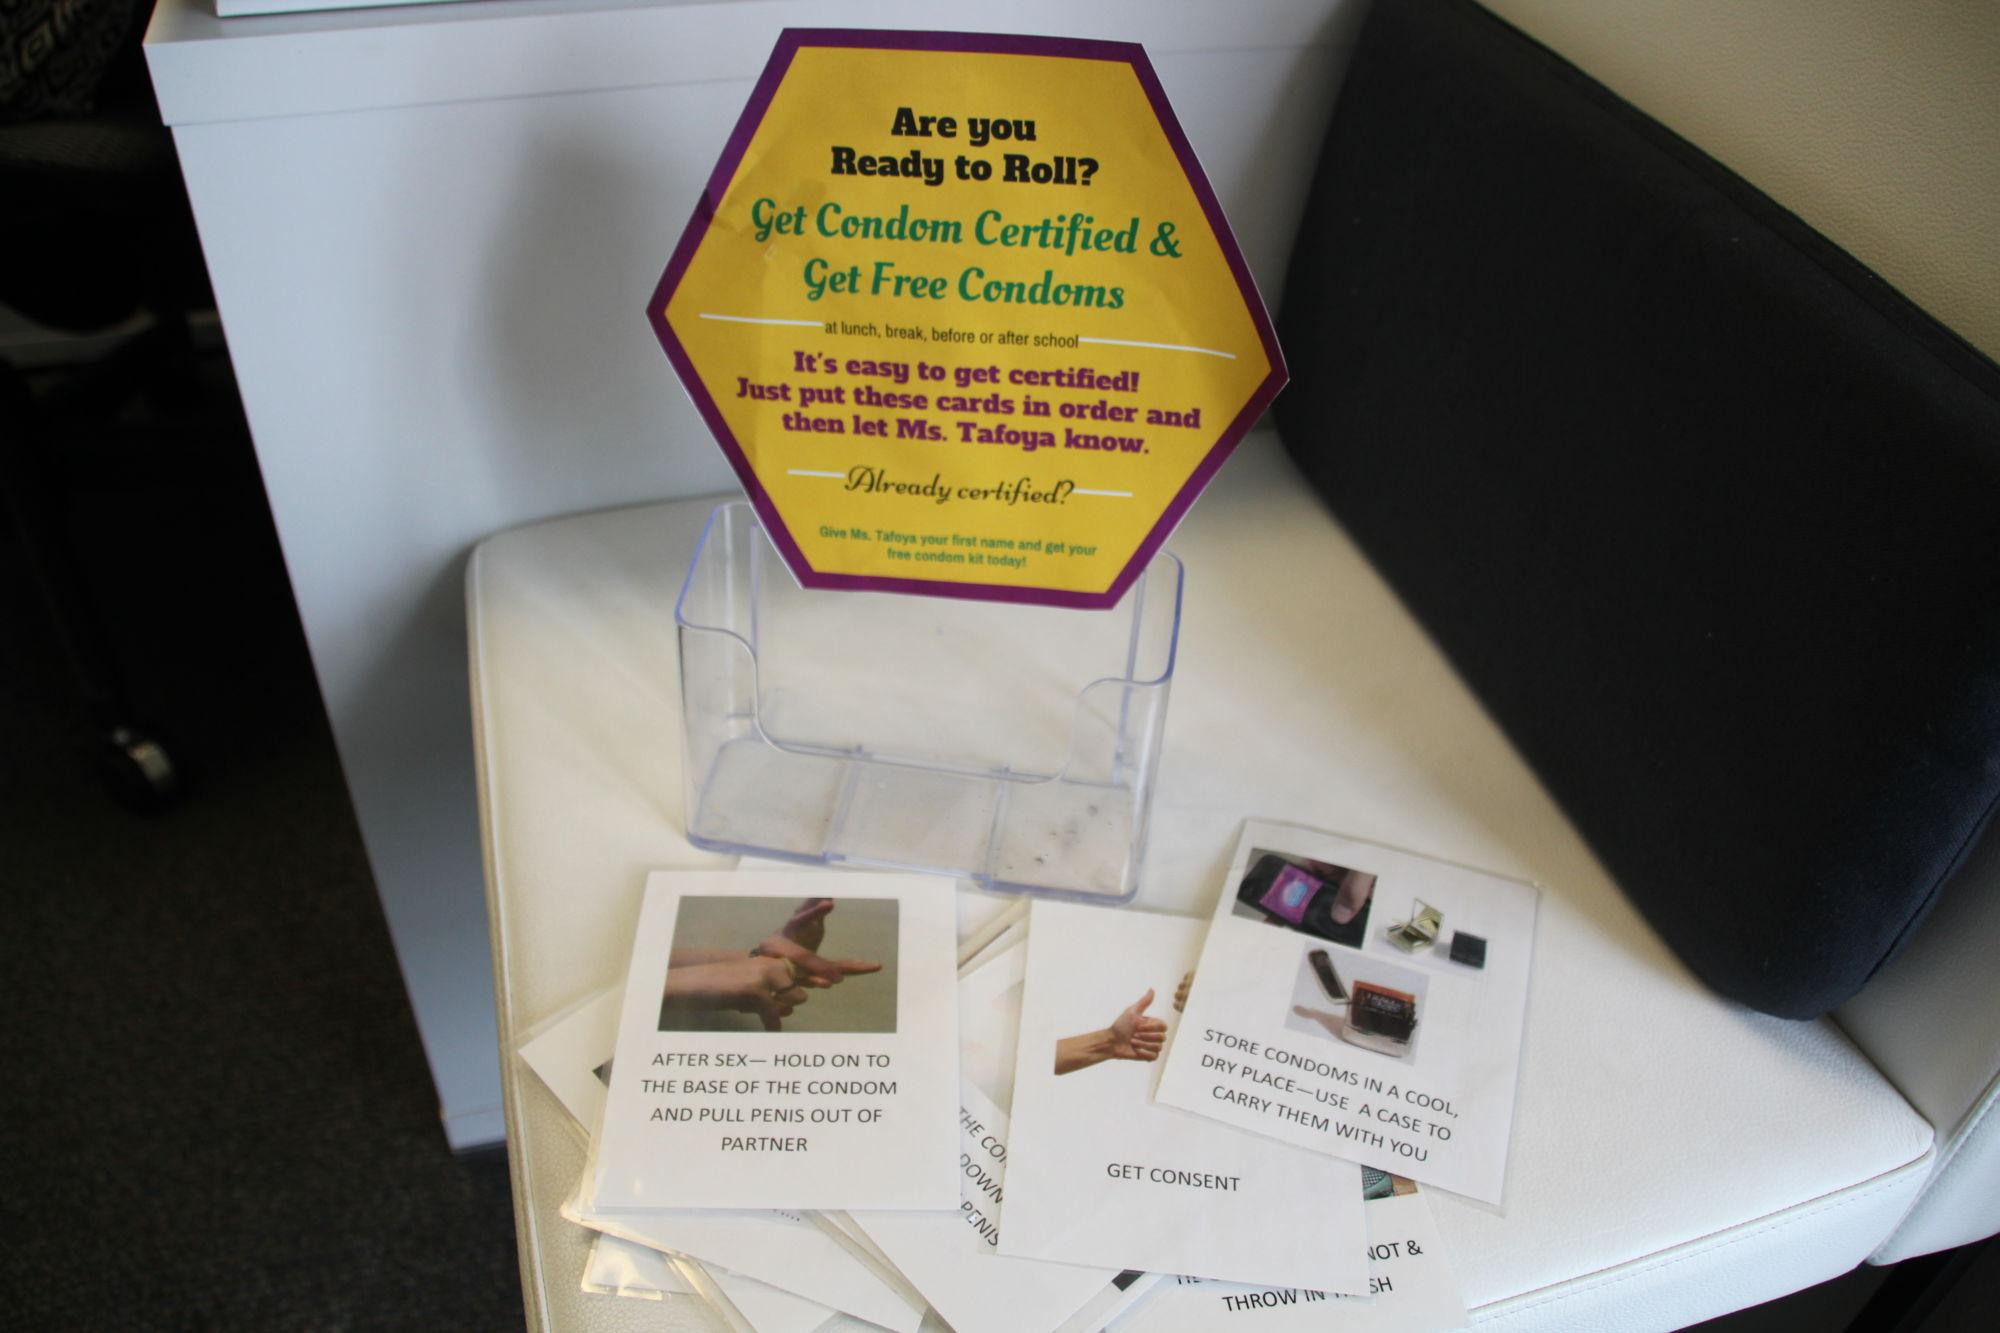 The+cards+presented+above+are+one+of+the+many+resources+the+Wellness+Center+uses+to+inform+students.%0A